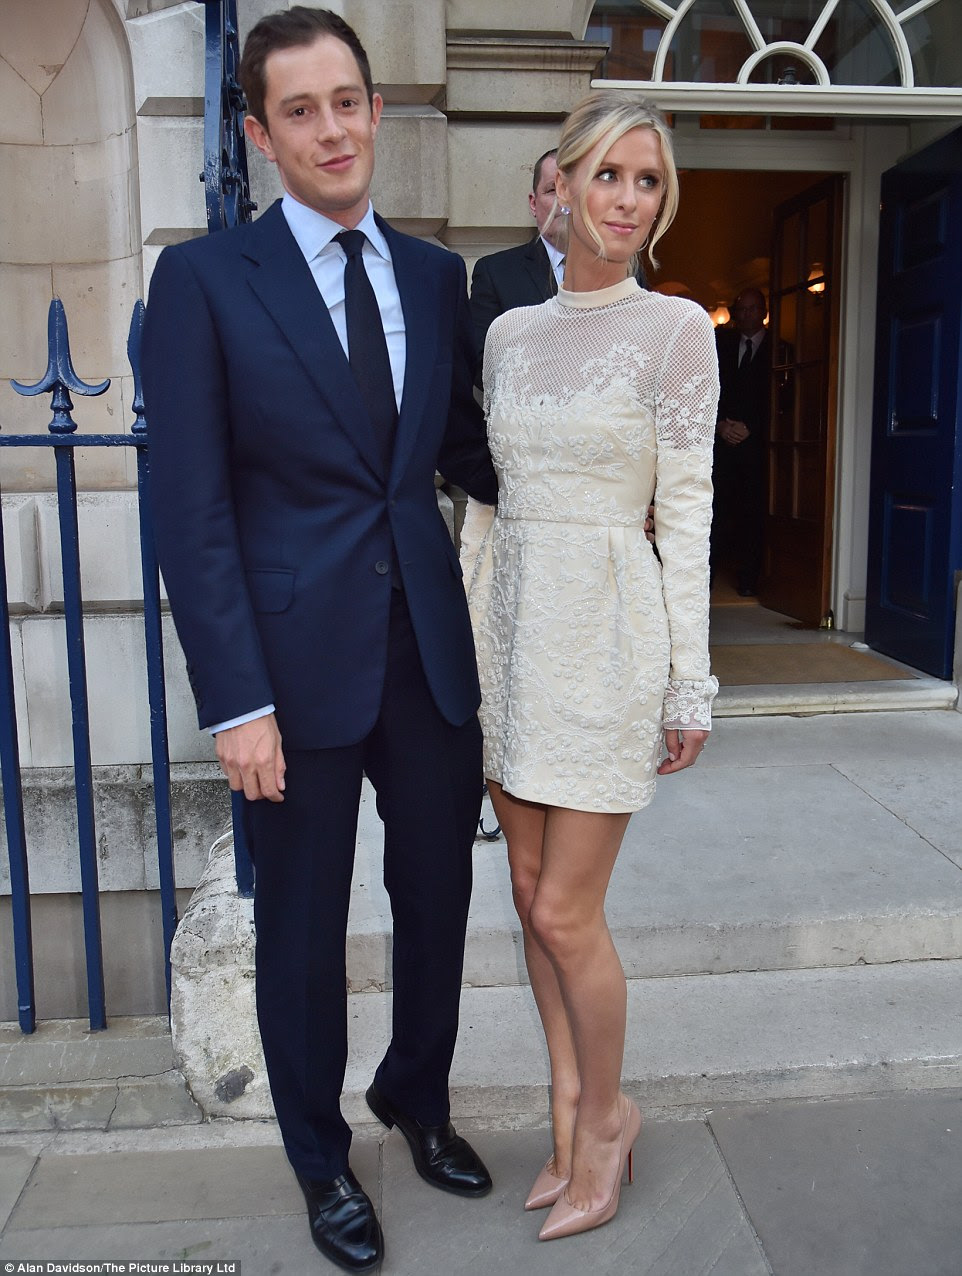 Their early courtship was complicated, as Nicky lived in Los Angeles while James was based in London